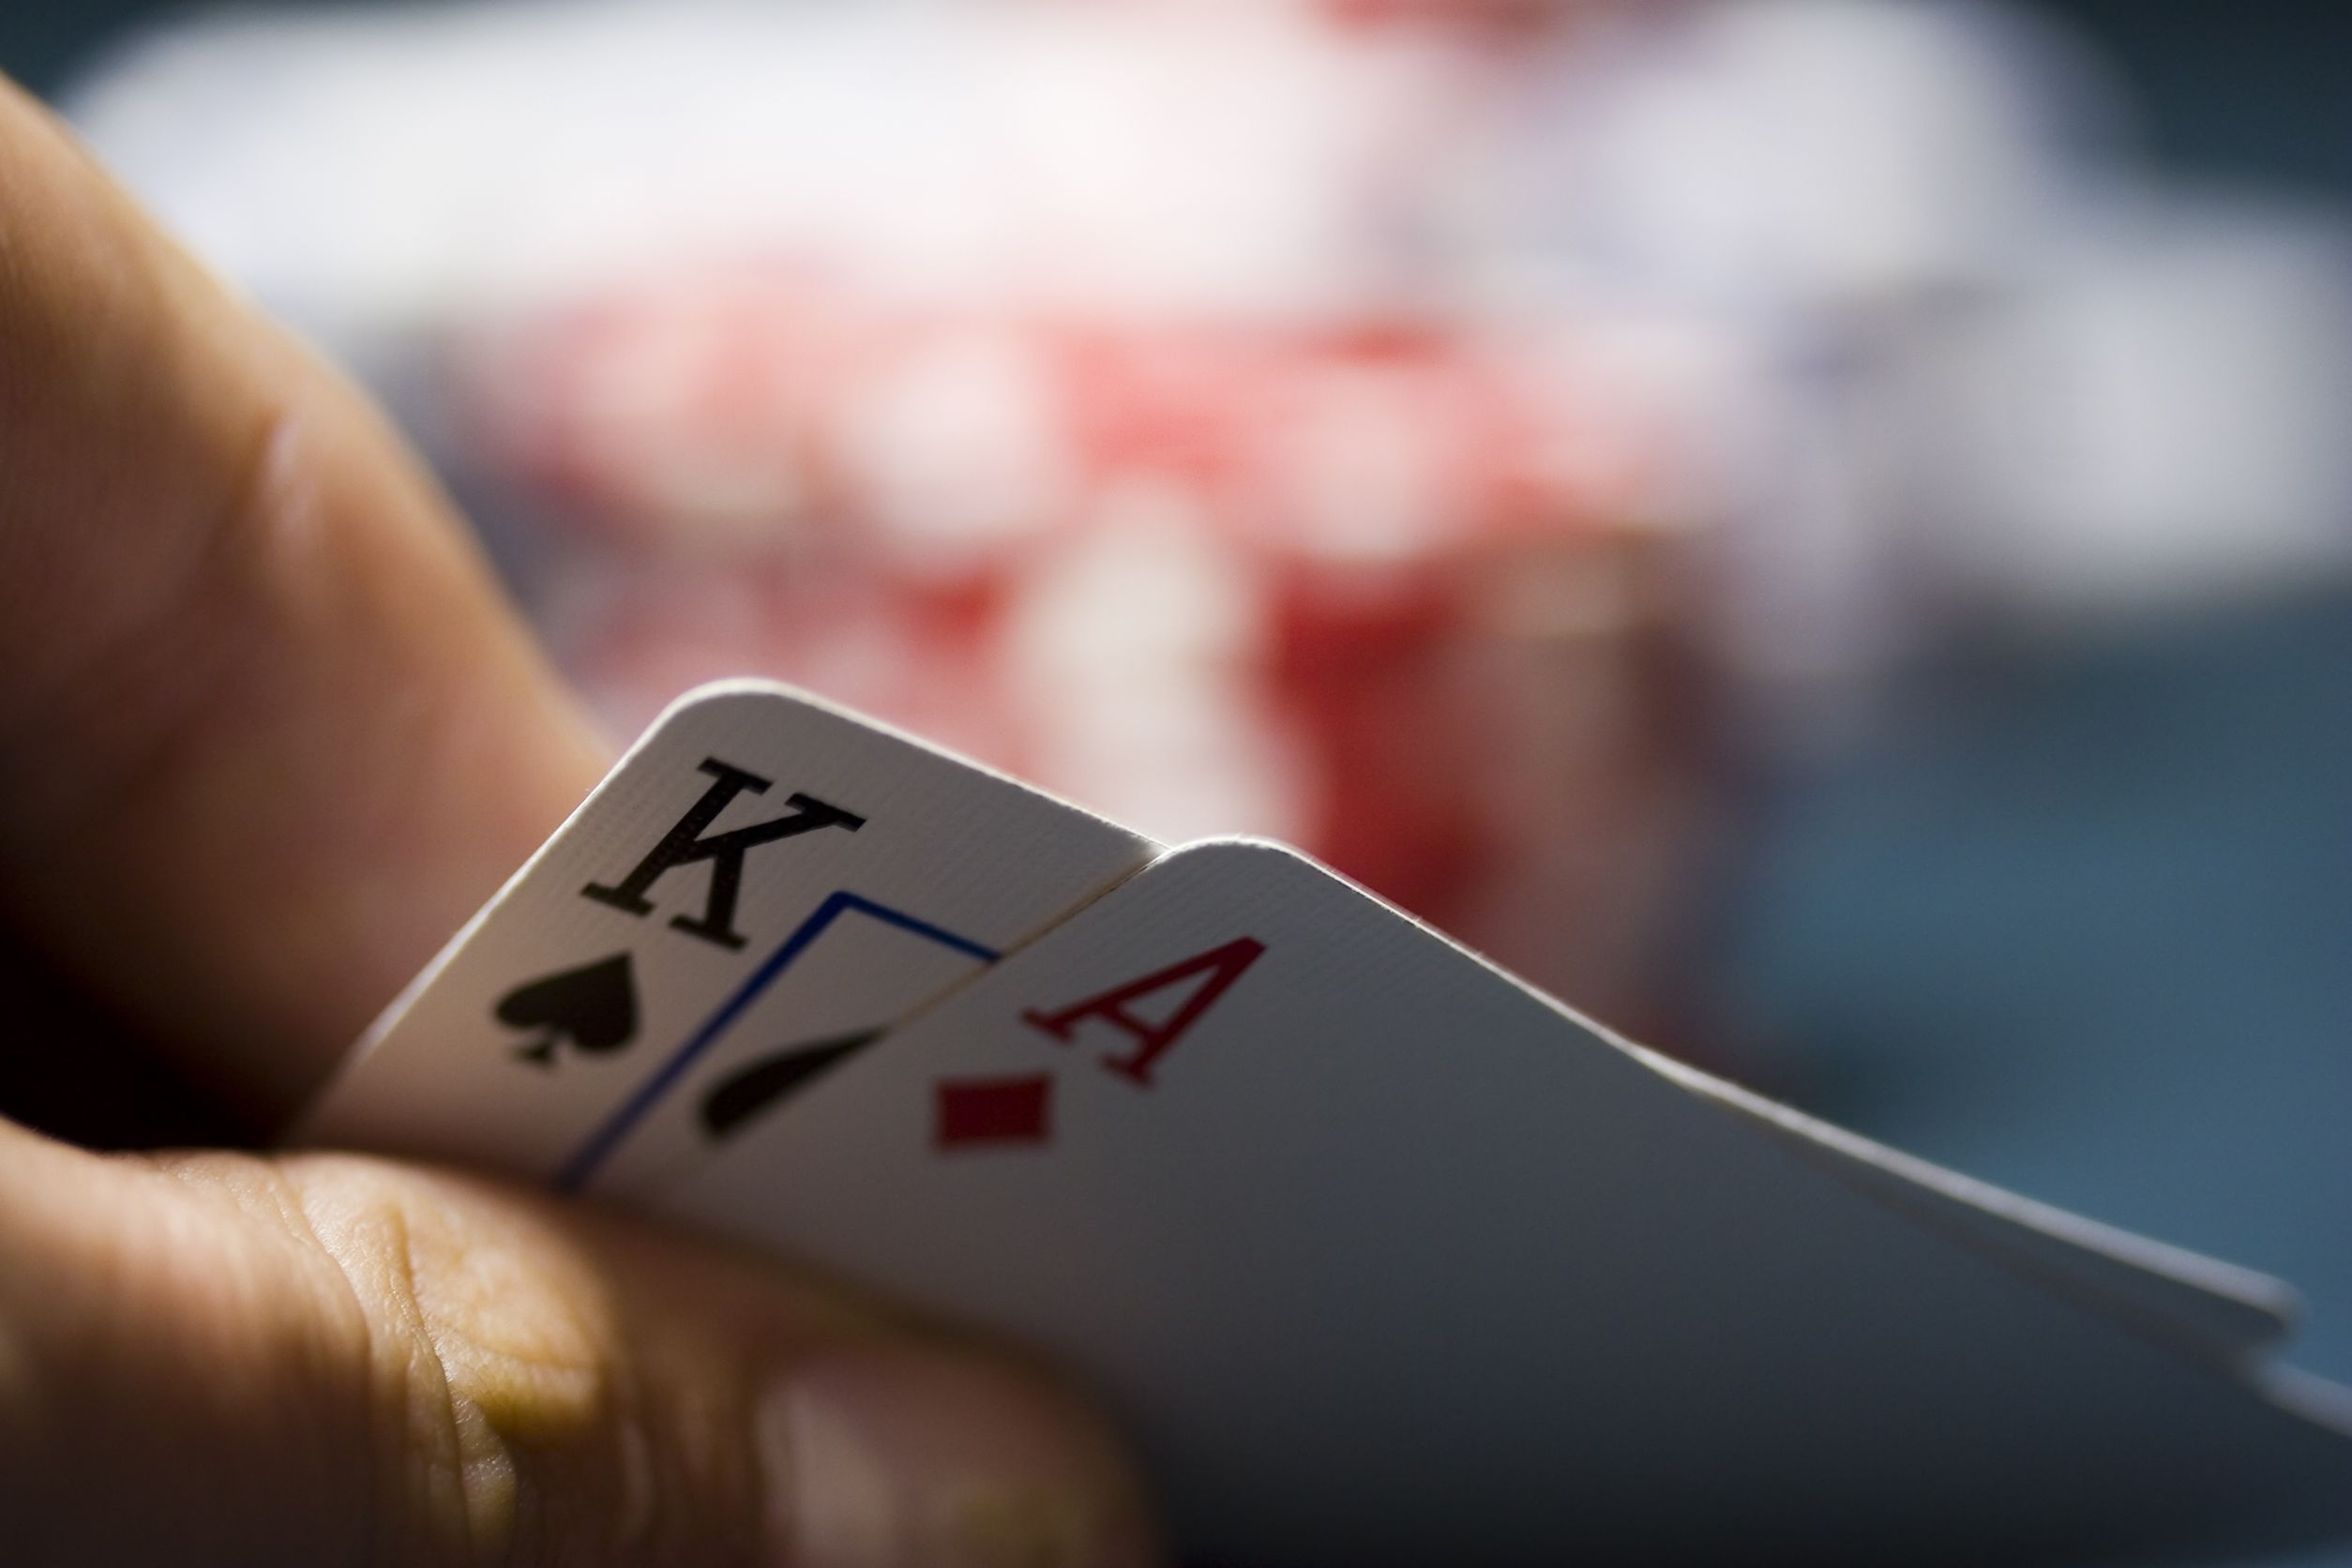 Learn how to play blackjack, as well as the rules and strategies for  winning at the card game. - FamilyEducation